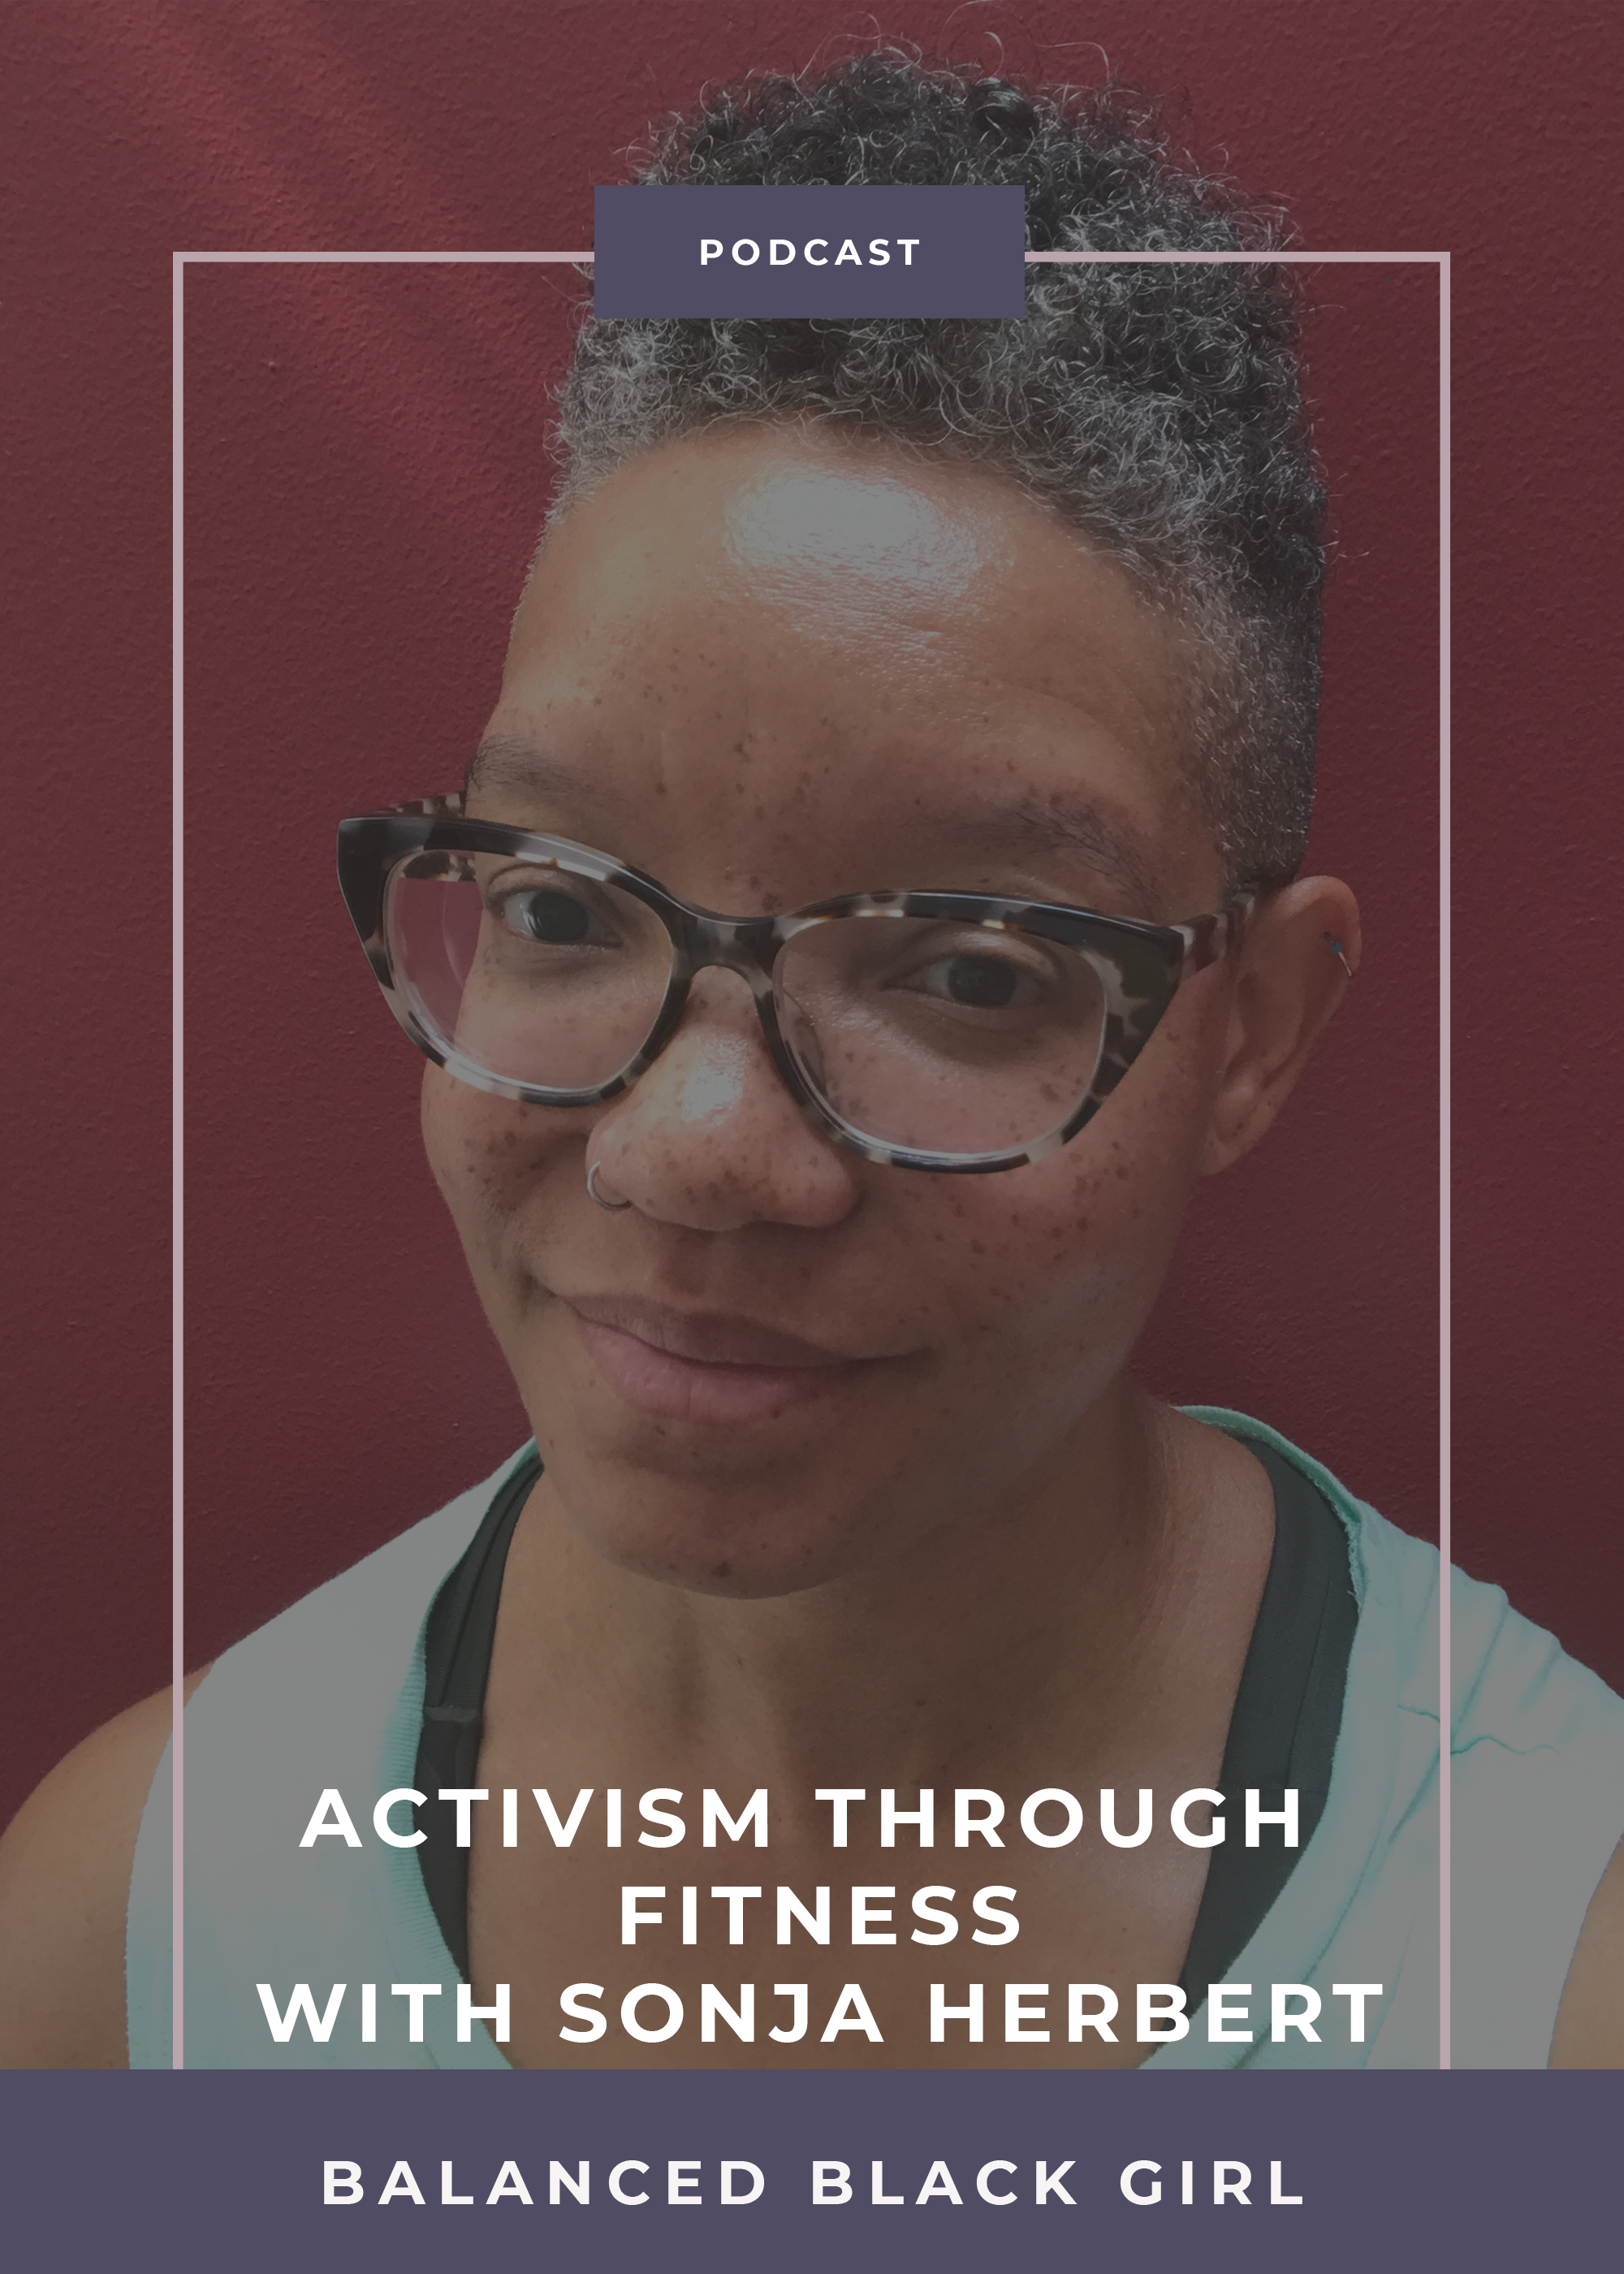 Episode 21: Activism Through Fitness | Balanced Black Girl Podcast